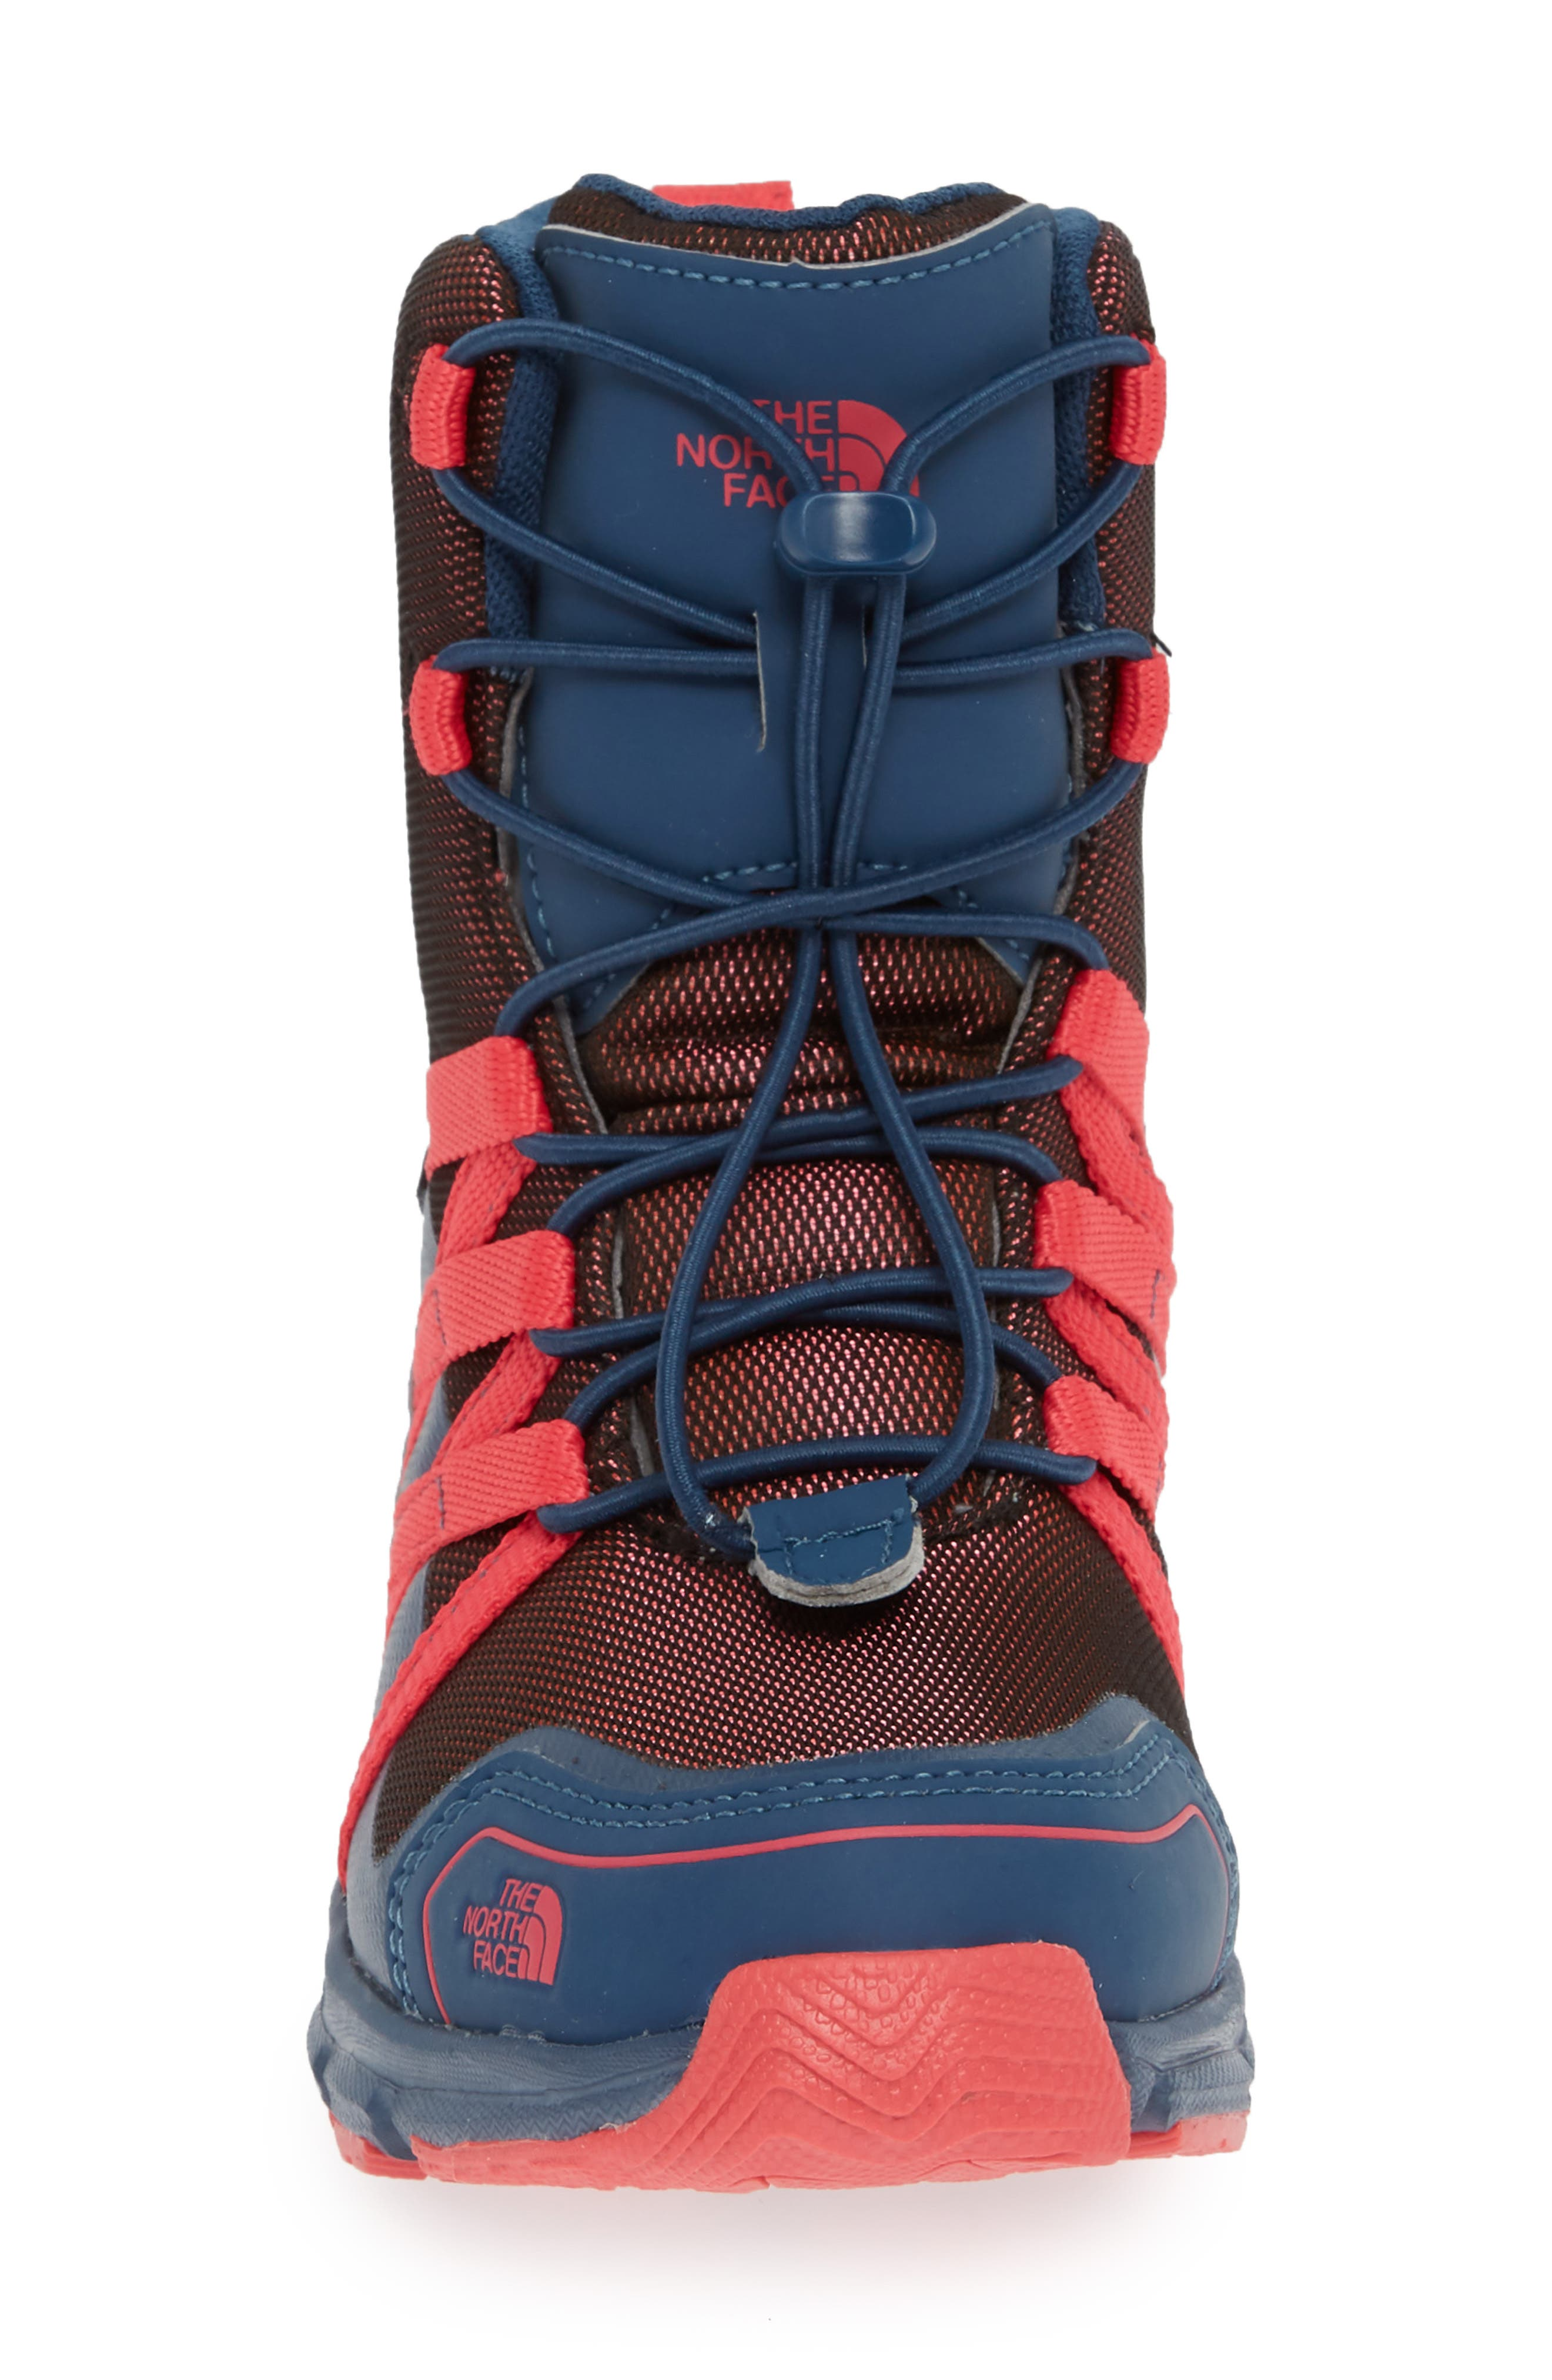 Junior Winter Sneaker Waterproof Insulated Boot,                             Alternate thumbnail 4, color,                             BLUE WING TEAL/ ATOMIC PINK